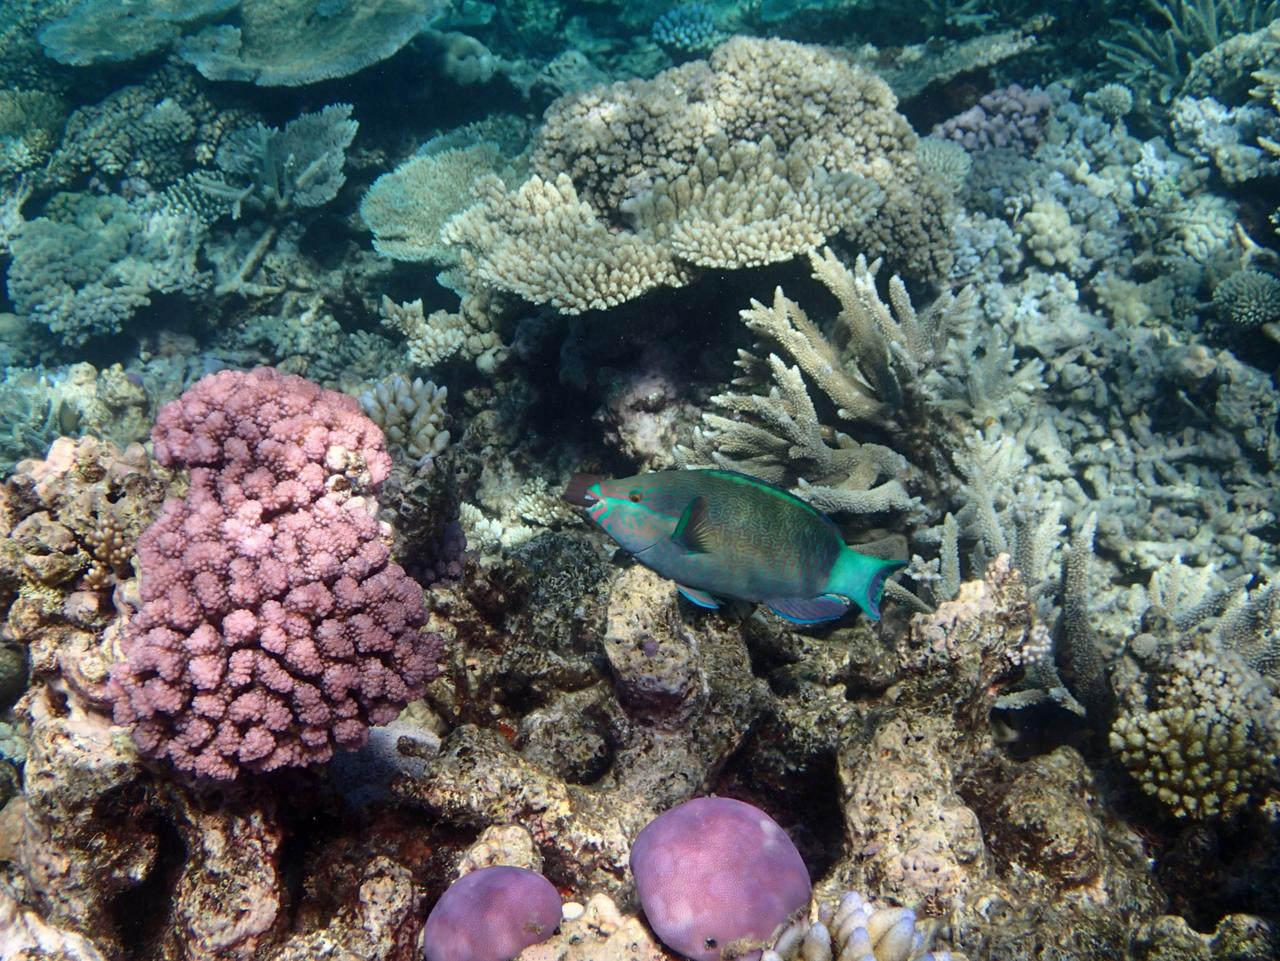 Supplied Travel Great Barrier Reef - image 3 of 4